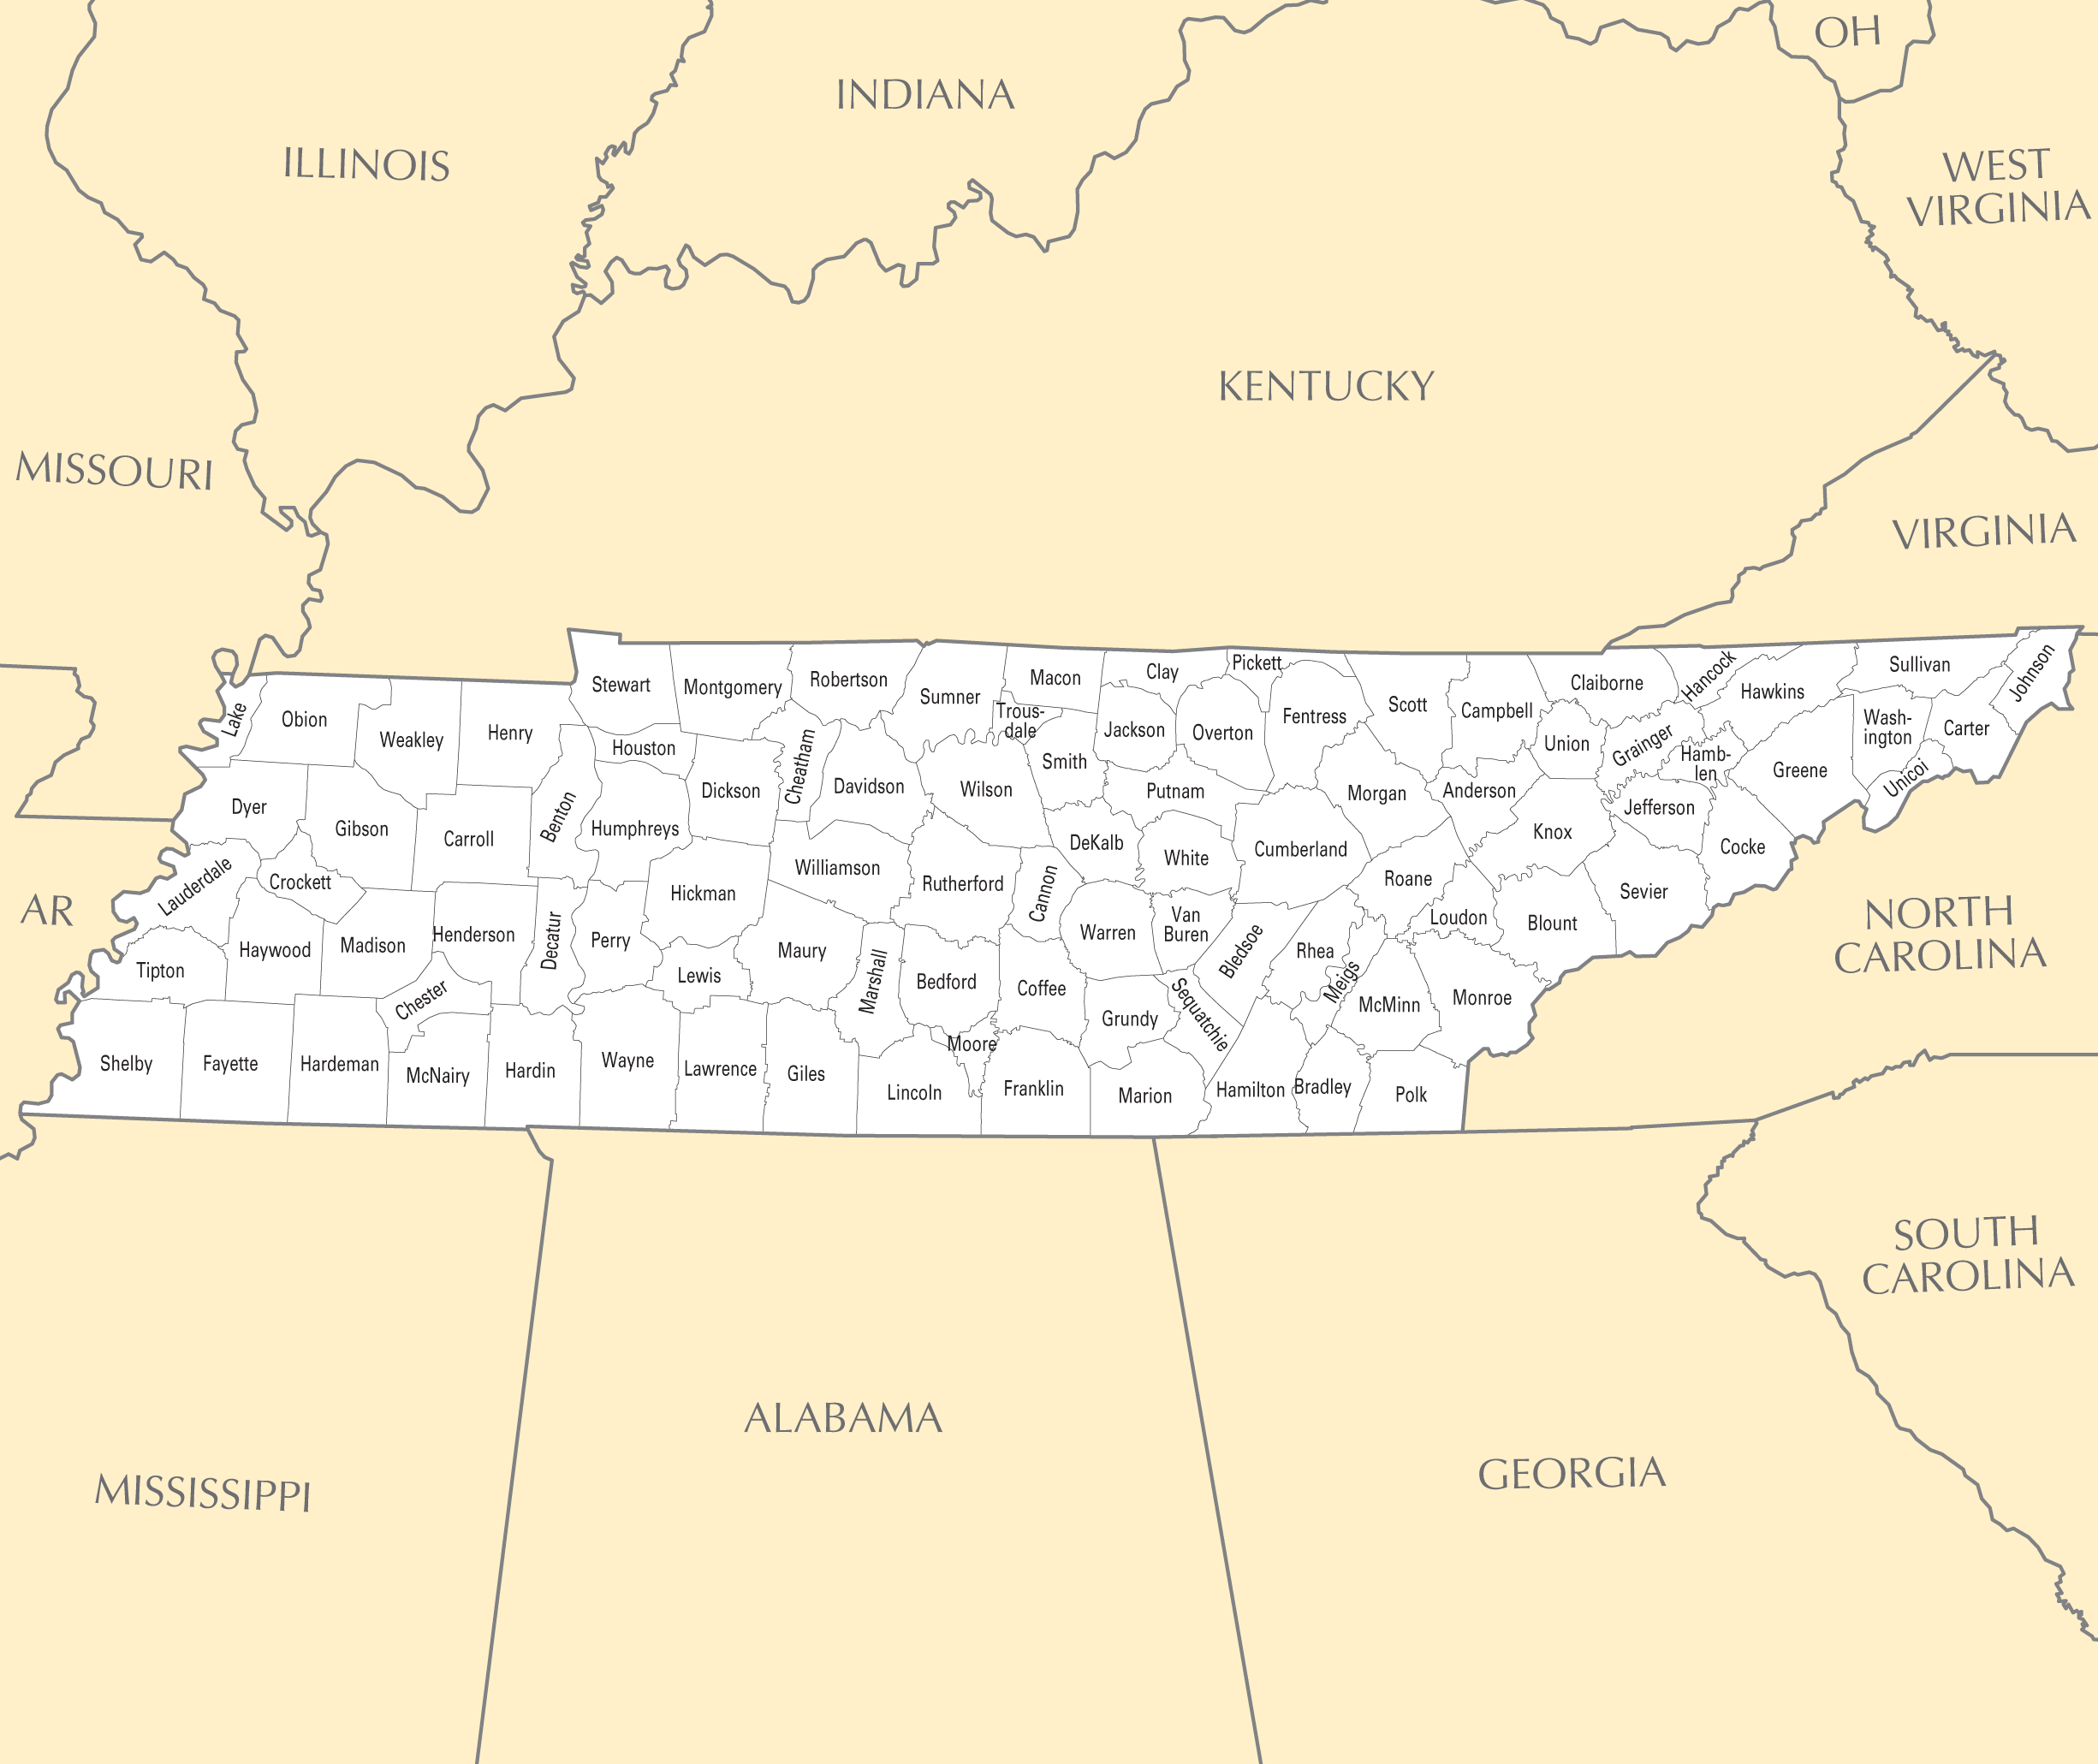 Similiar Large Tennessee County Map Printable Keywords